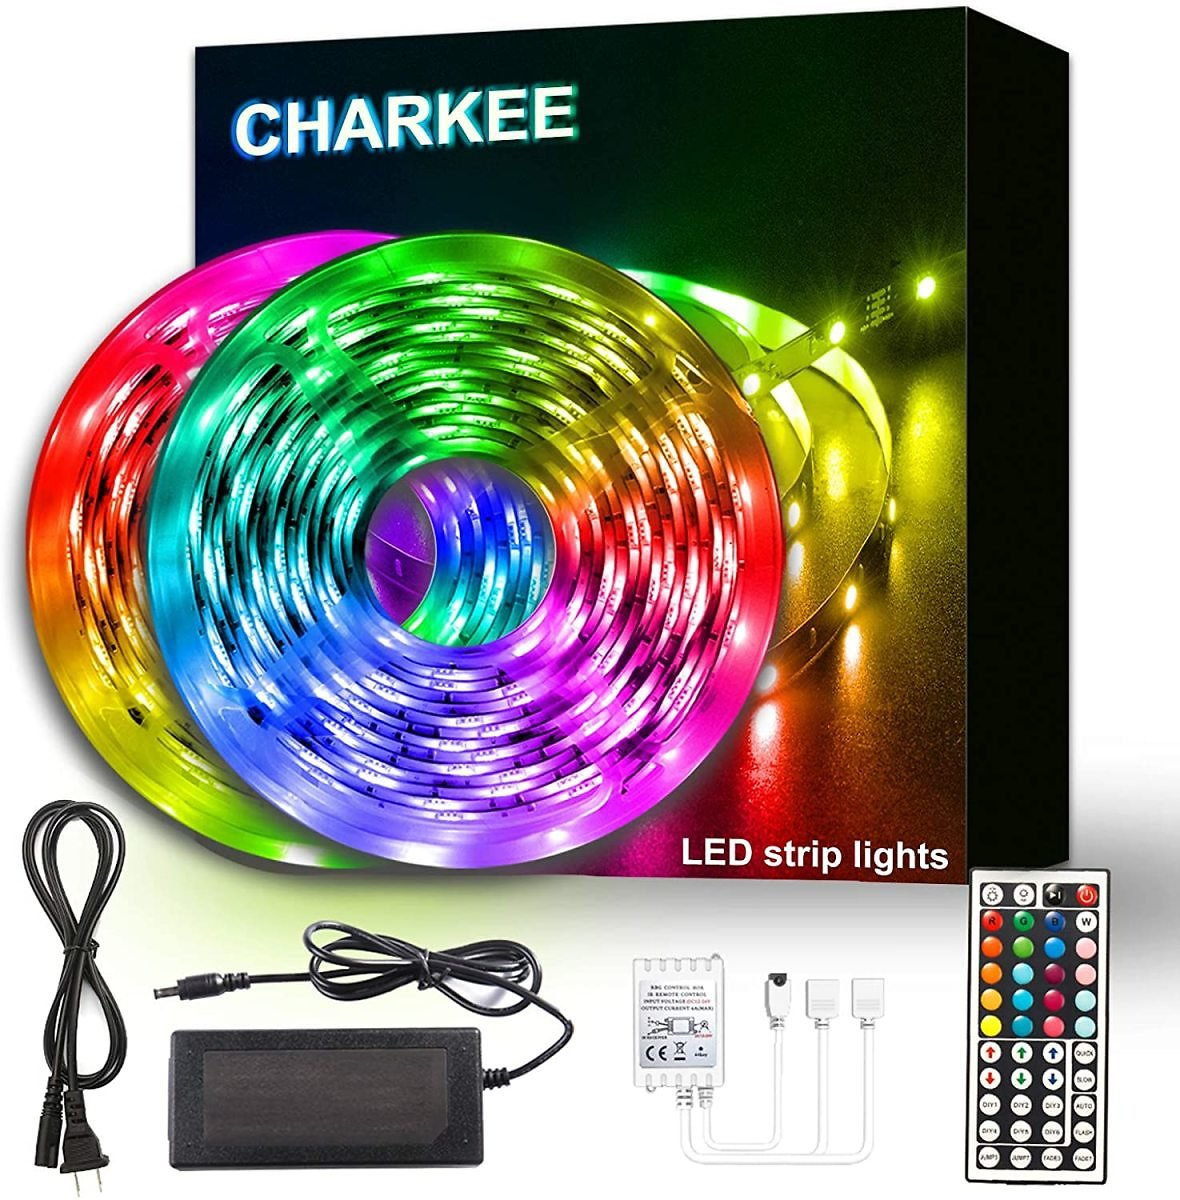 Charkee Led Lights for Bedroom 50ft, 2 Rolls of 25ft Led Light Strips with Remote and Power Supply for Bedroom, Room, Kitchen, Decoration